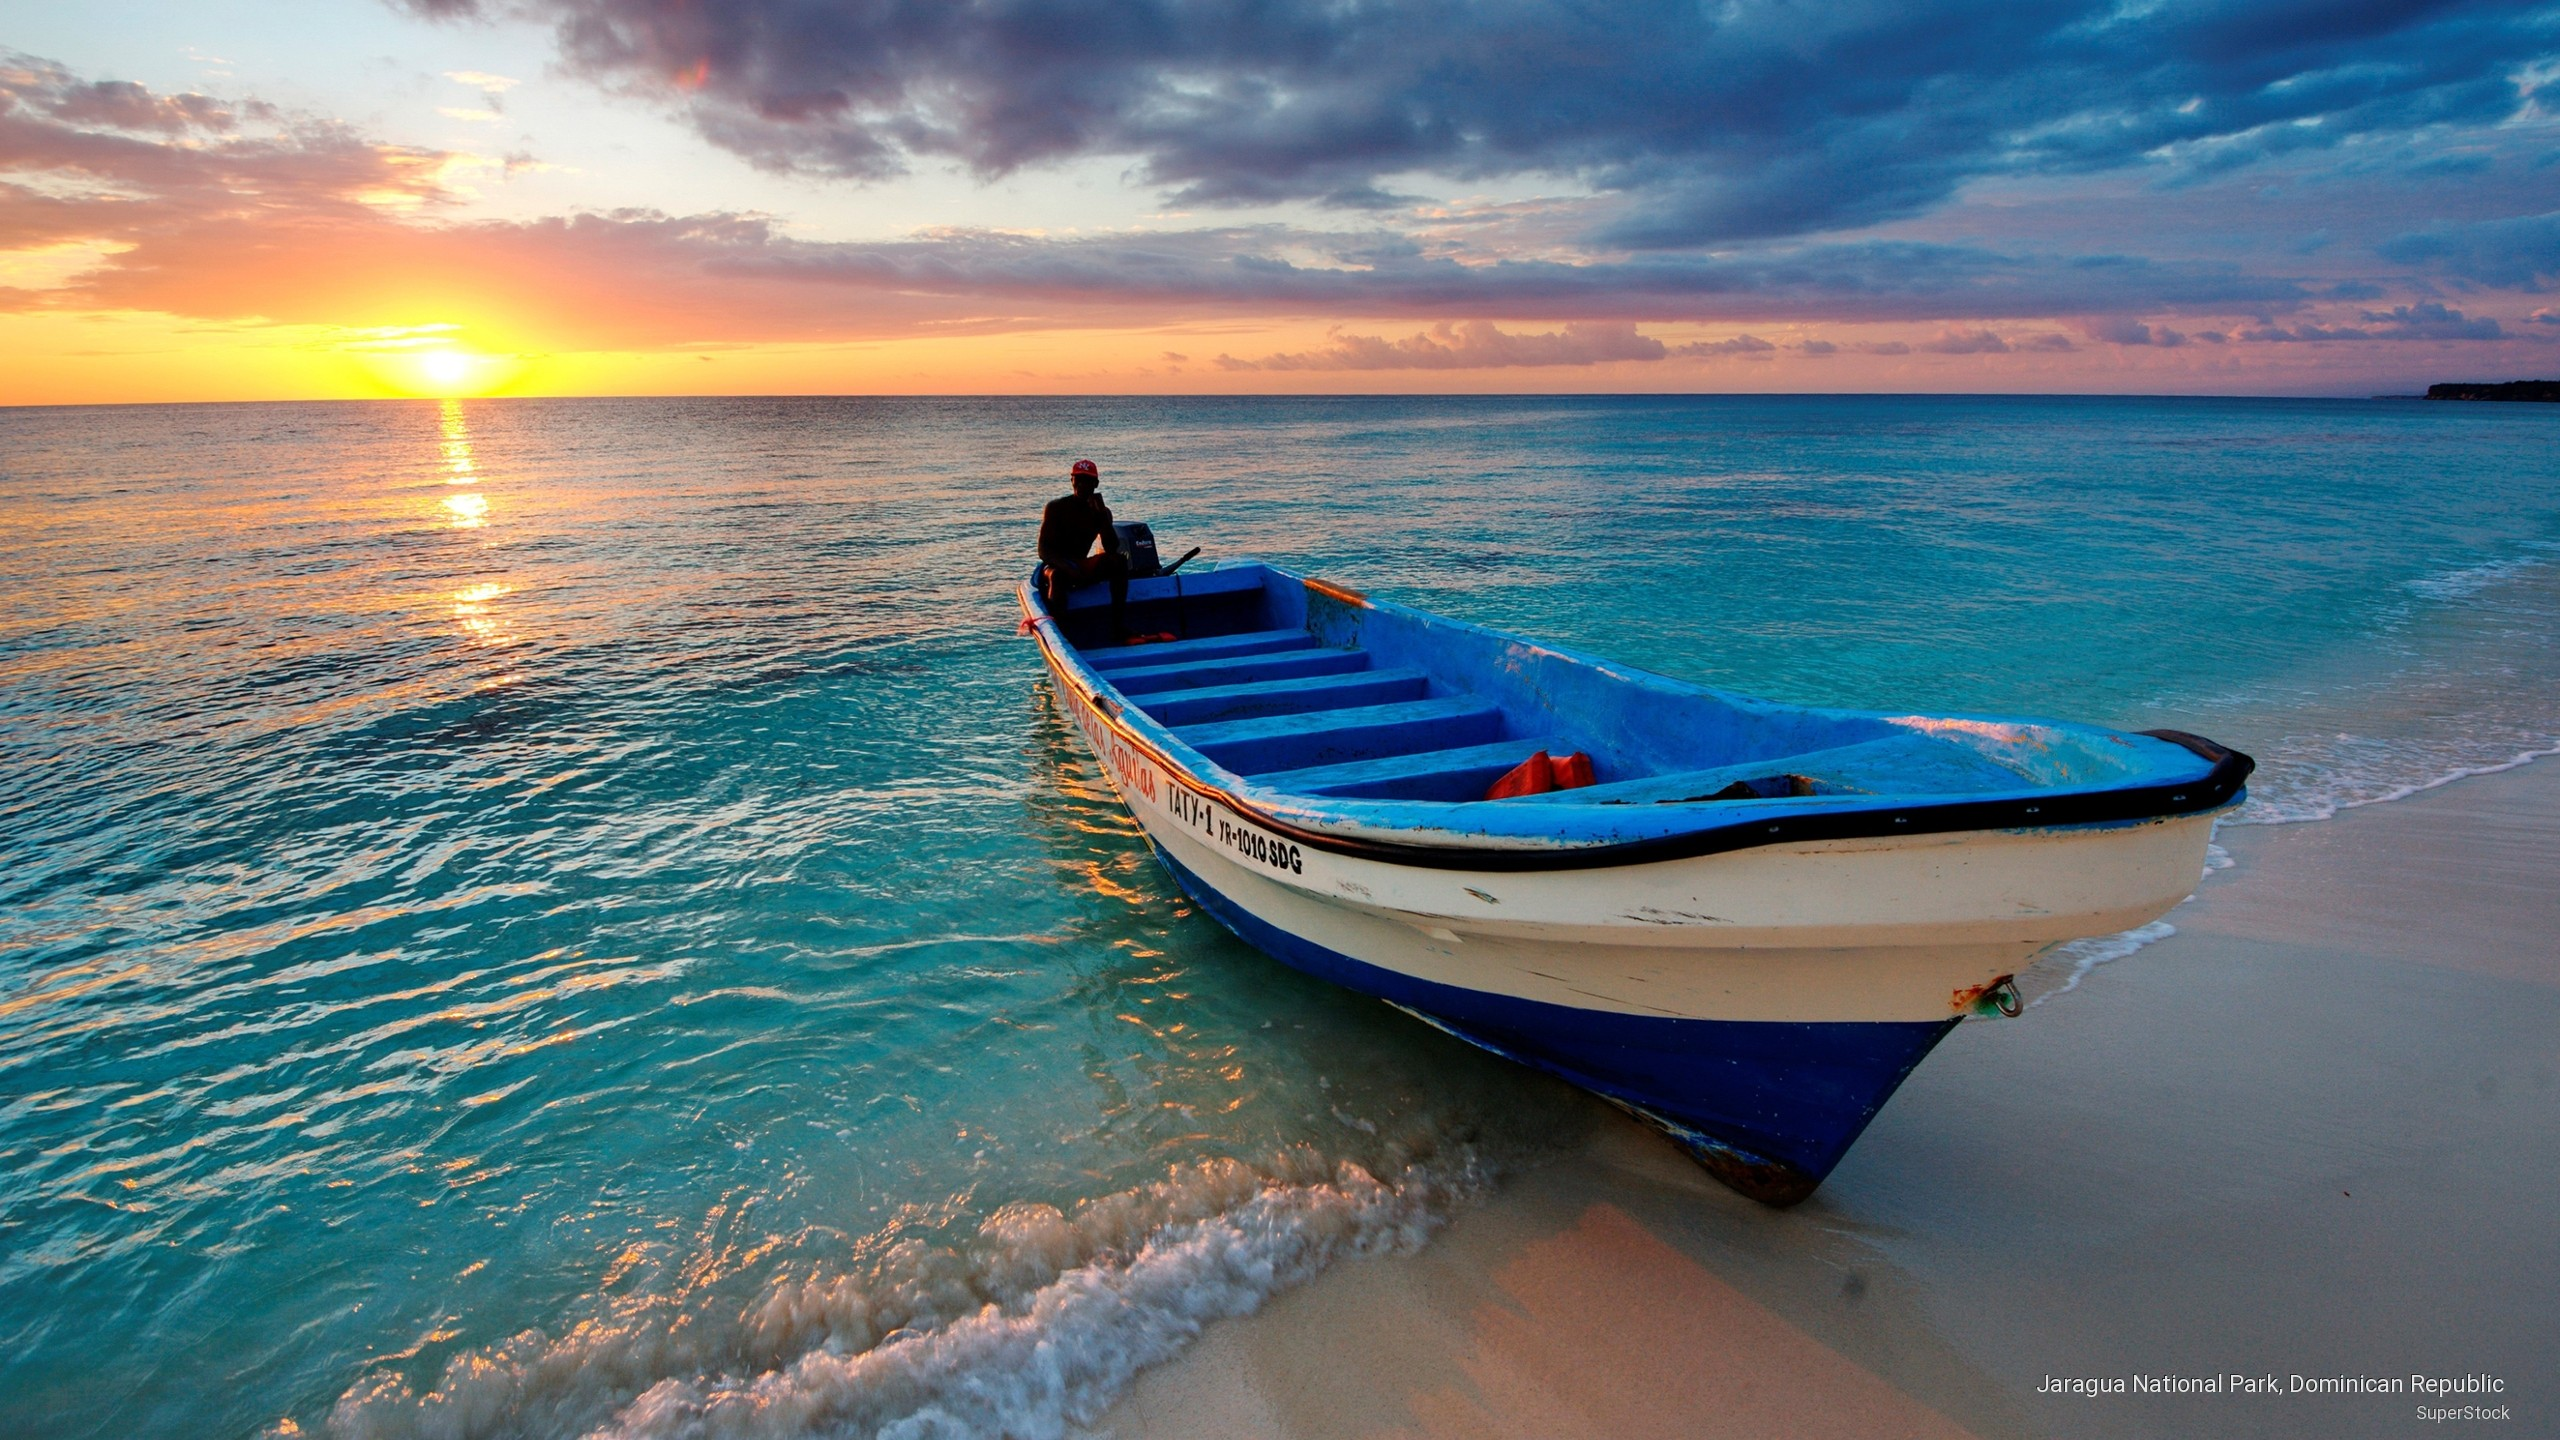 Beaches: Beach Boats Sunset Oceans Sunsets Boat Sea Nature Beaches ...